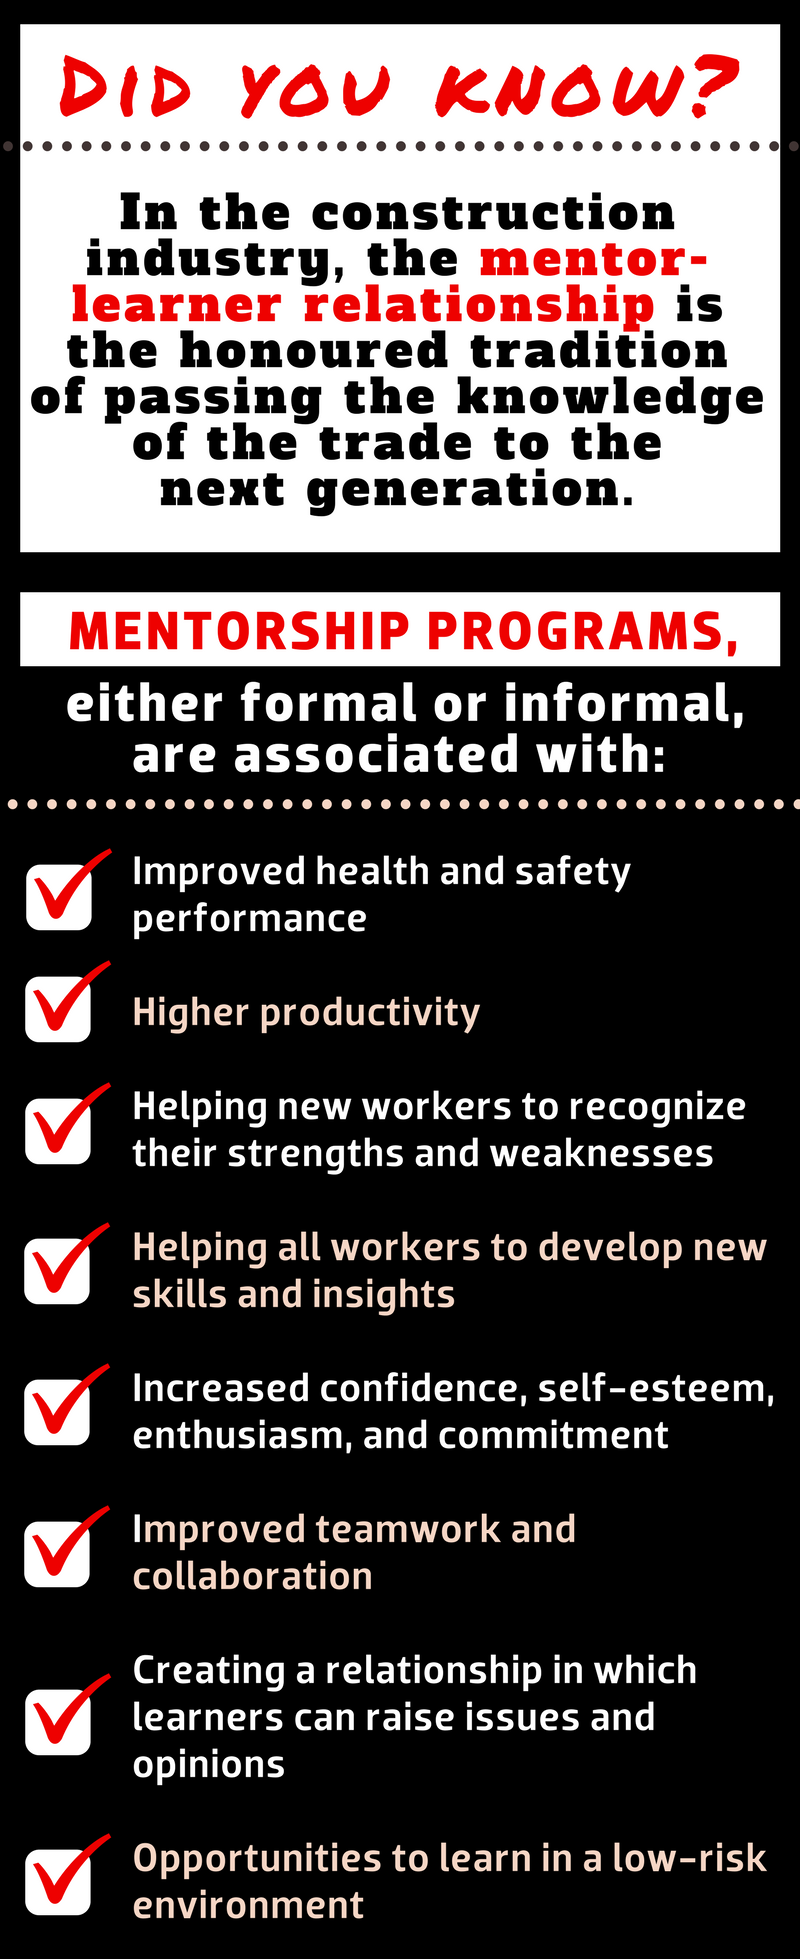 Mentorship programs, either formal or informal, are associated with these benefits.